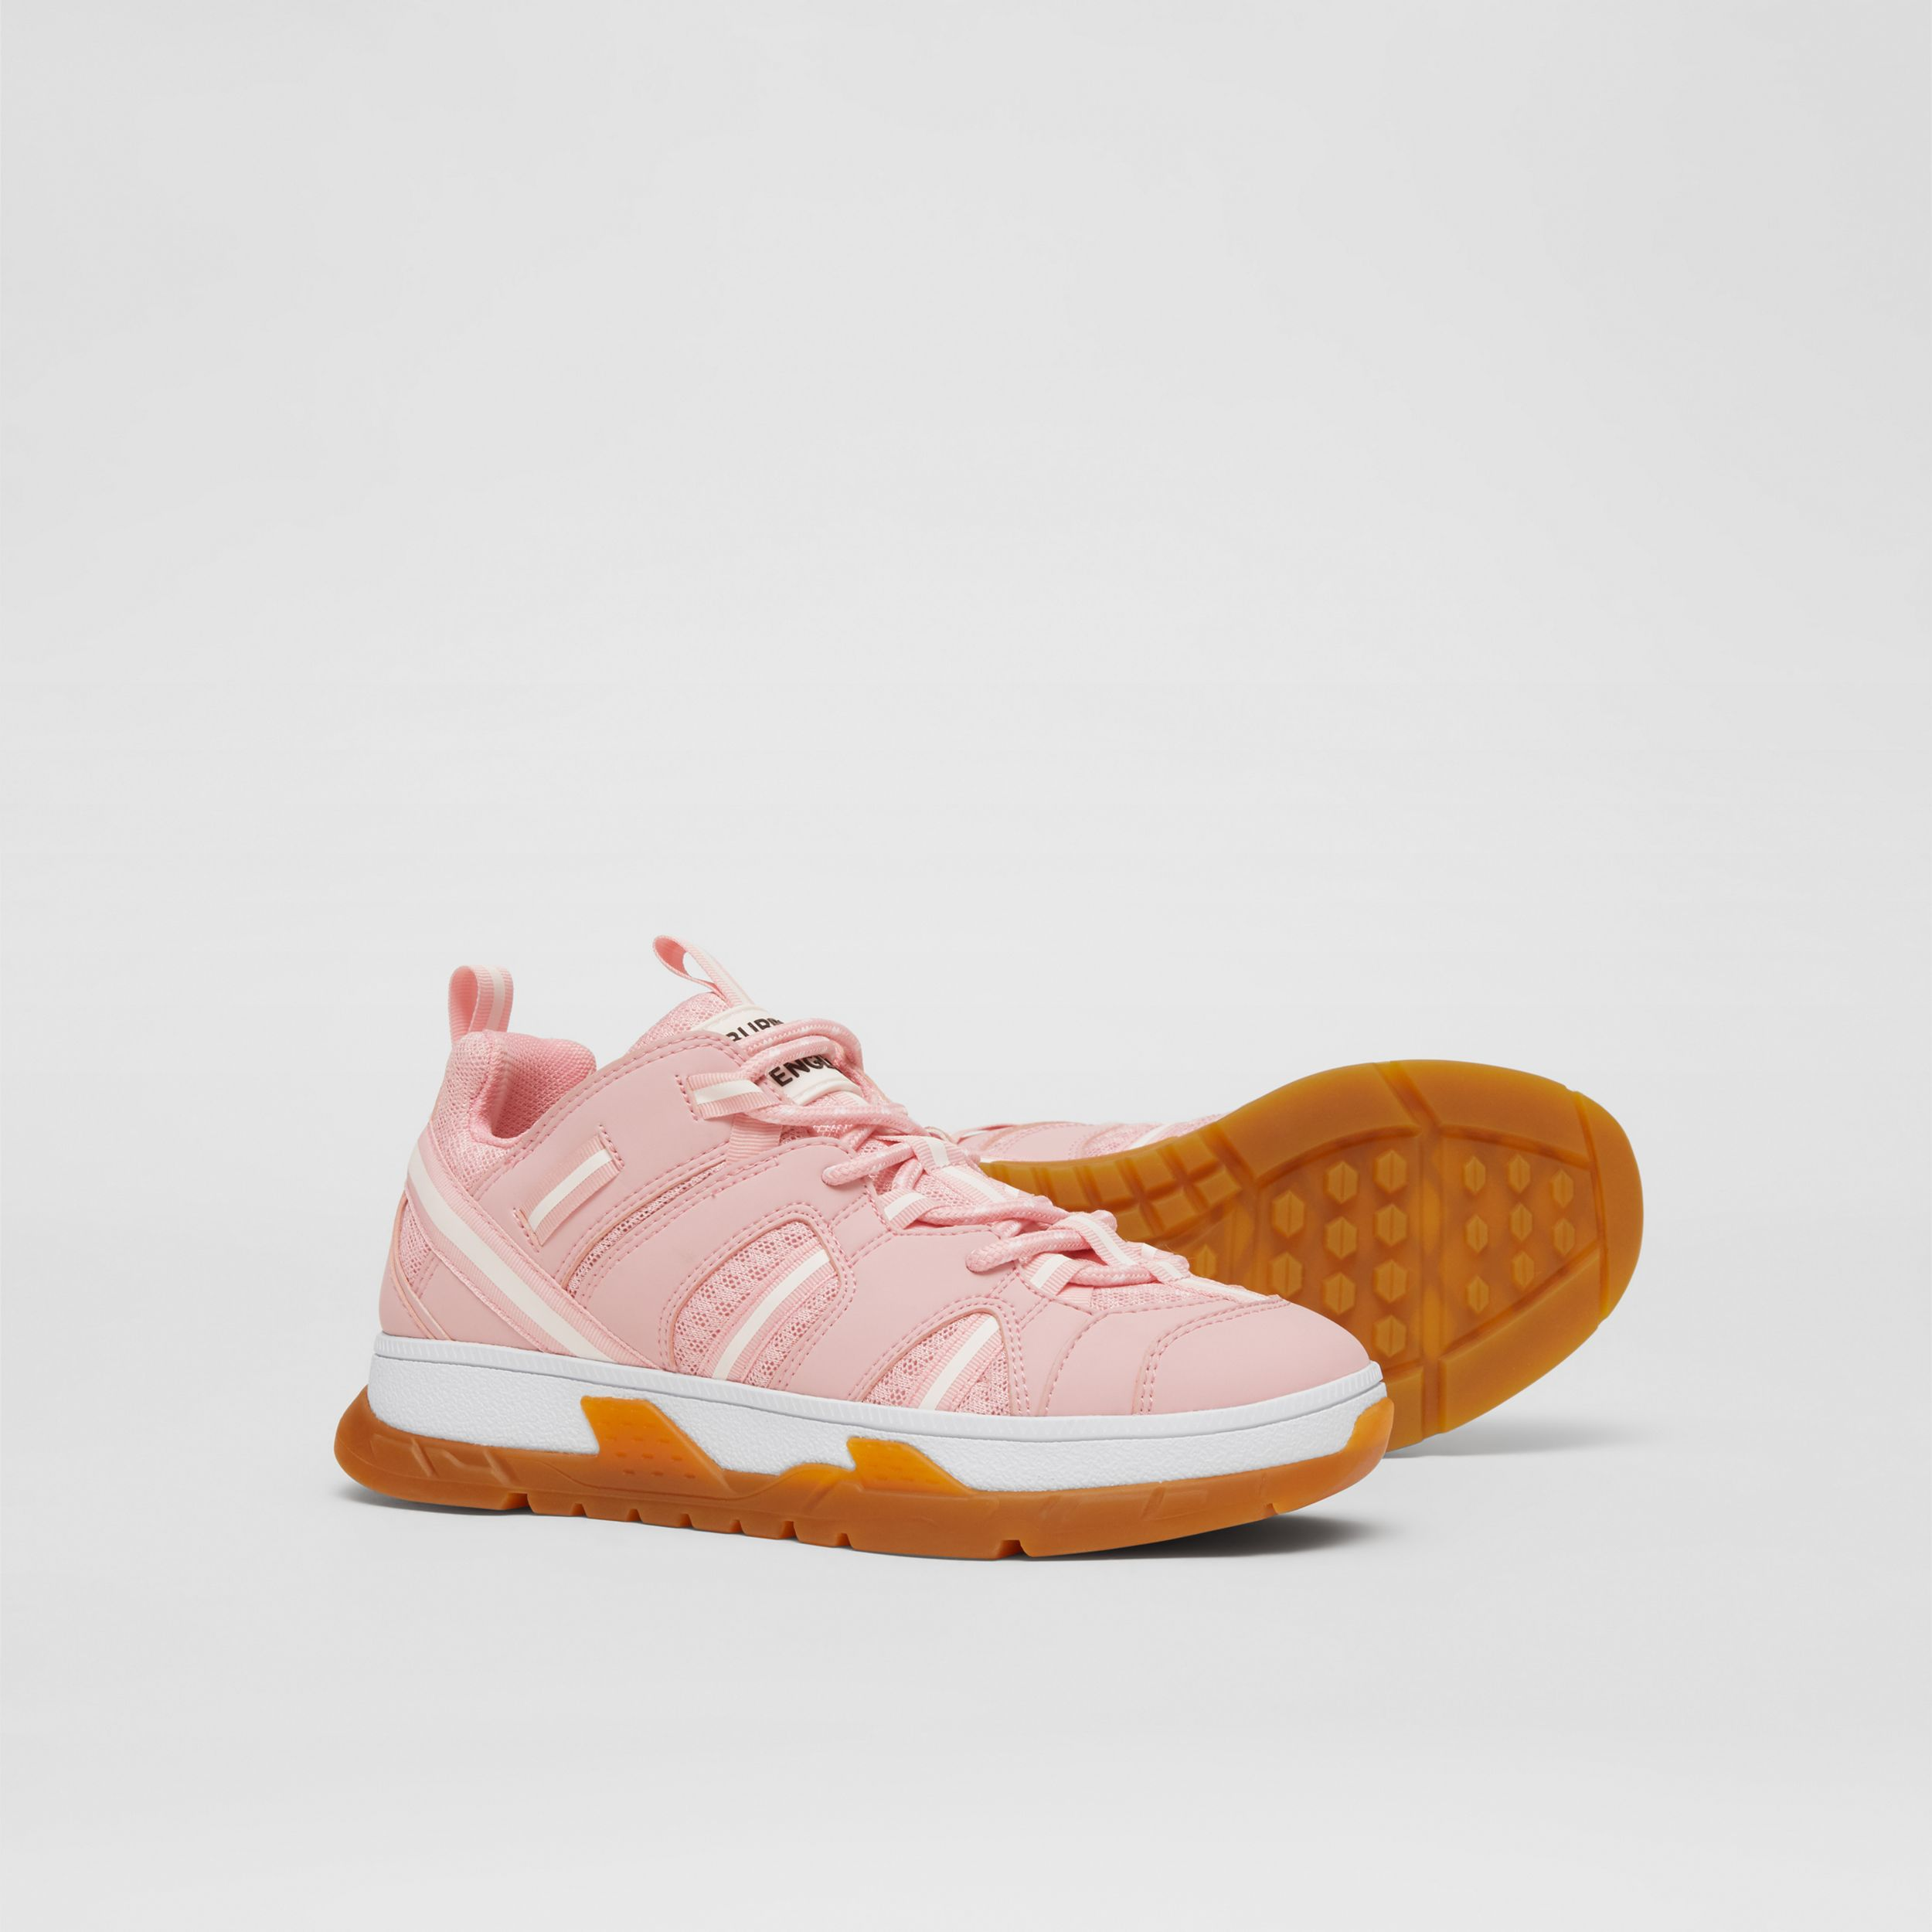 Nylon and Mesh Union Sneakers in Candy Pink - Children | Burberry - 4